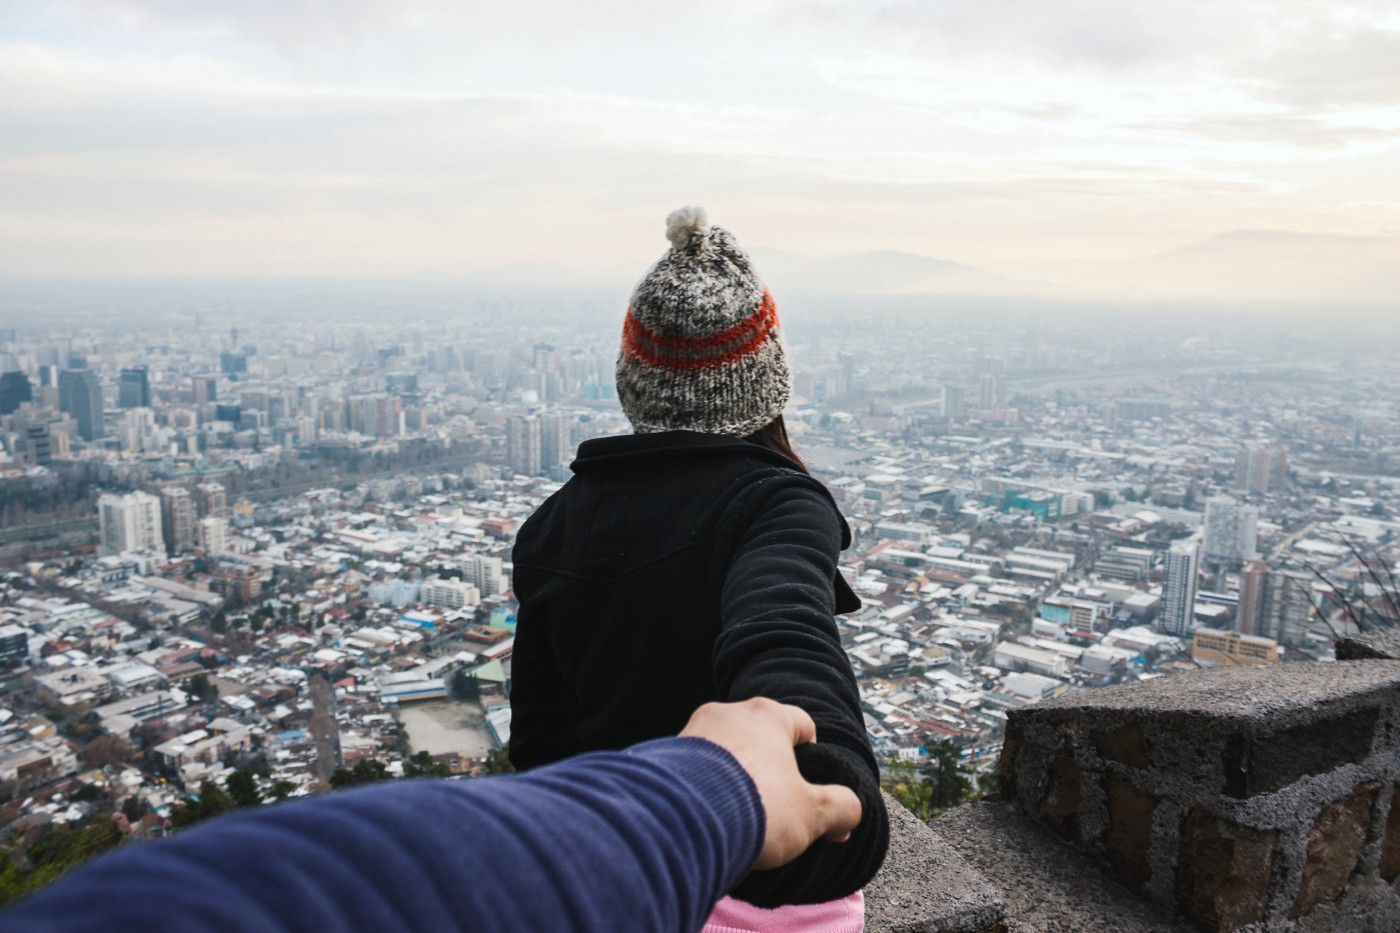 A woman facing forward reaches her arm back, guiding her companion to a viewpoint of the vast city in front of them.